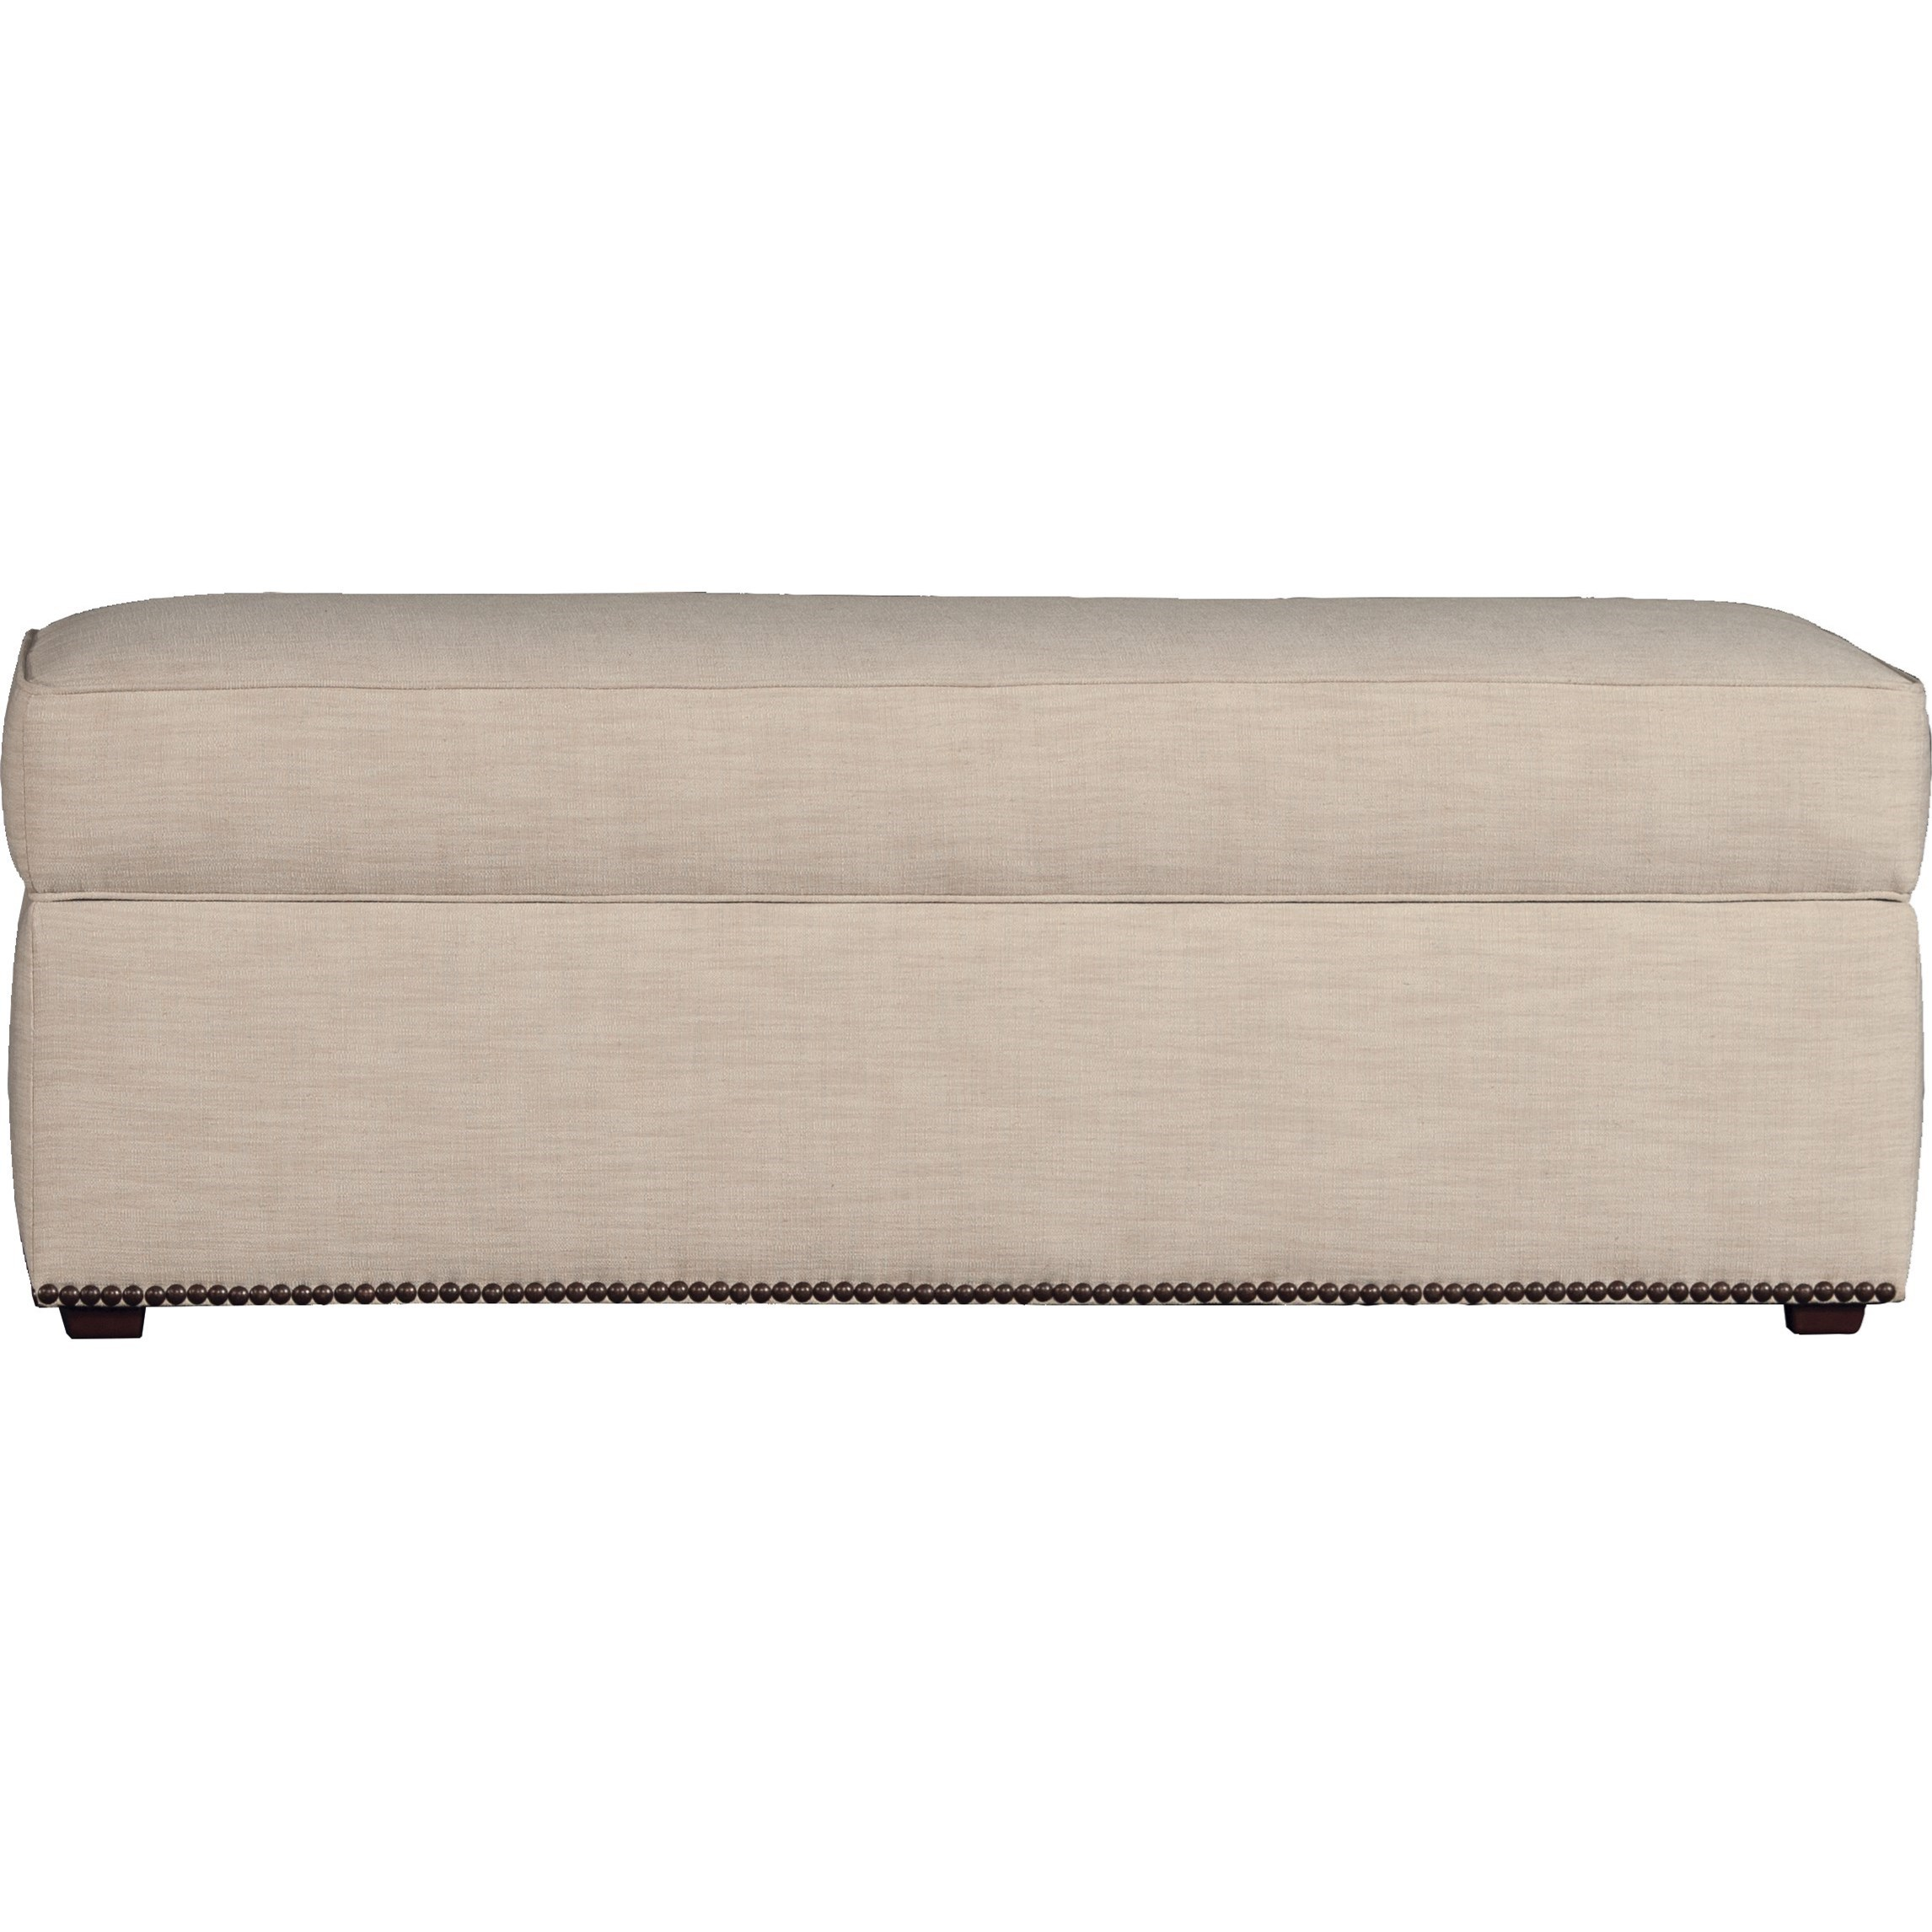 7140 Standard Storage Bench by Mayo at Wilcox Furniture